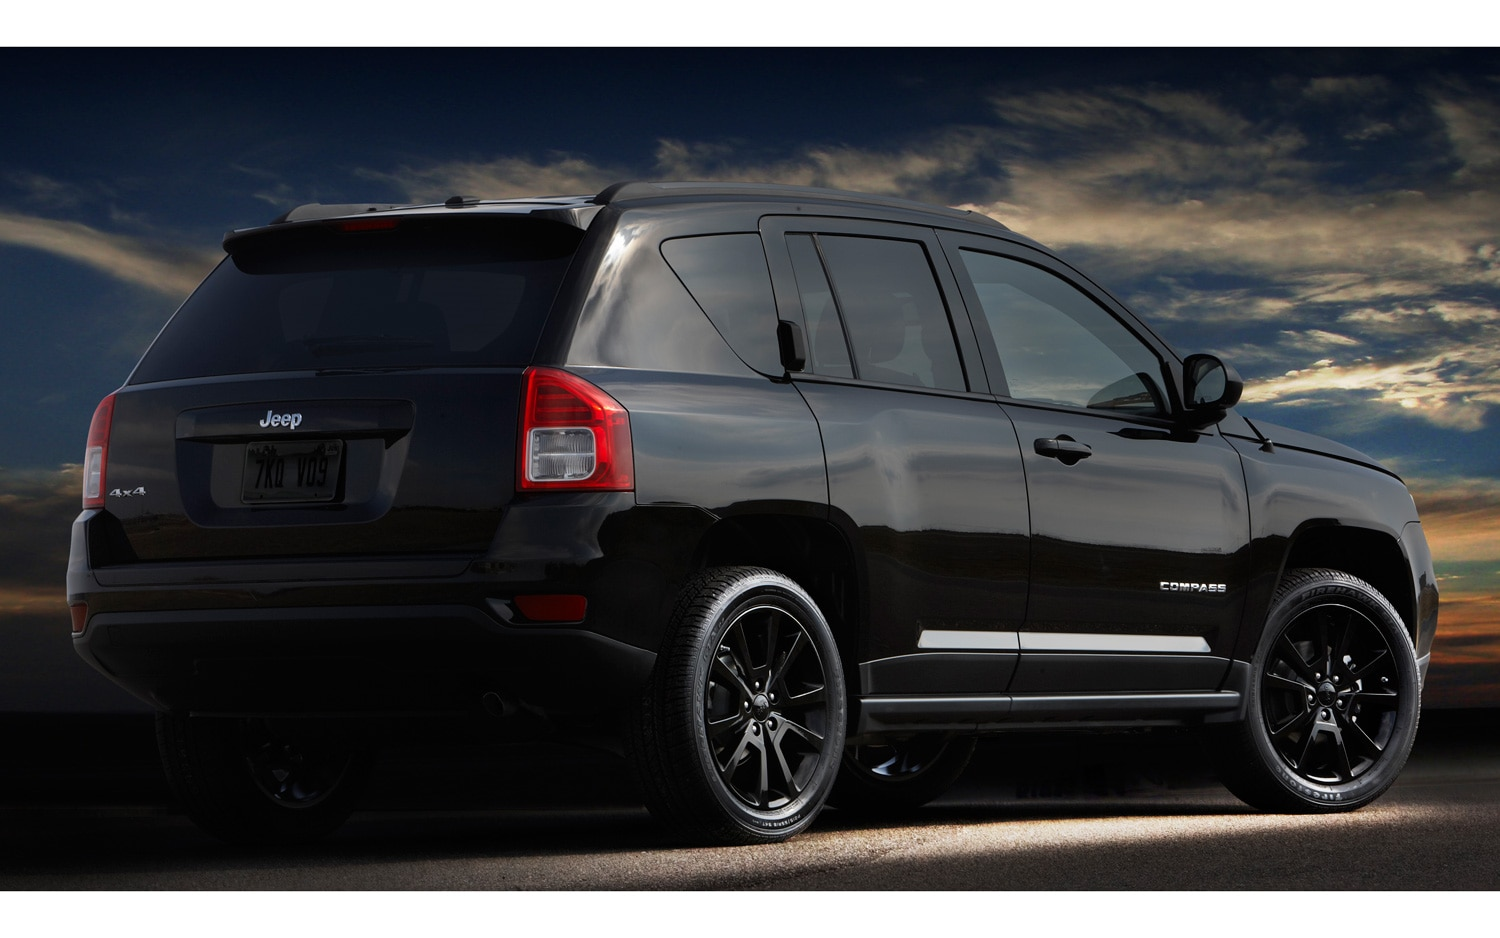 jeep launches altitude editions of grand cherokee compass and patriot. Black Bedroom Furniture Sets. Home Design Ideas